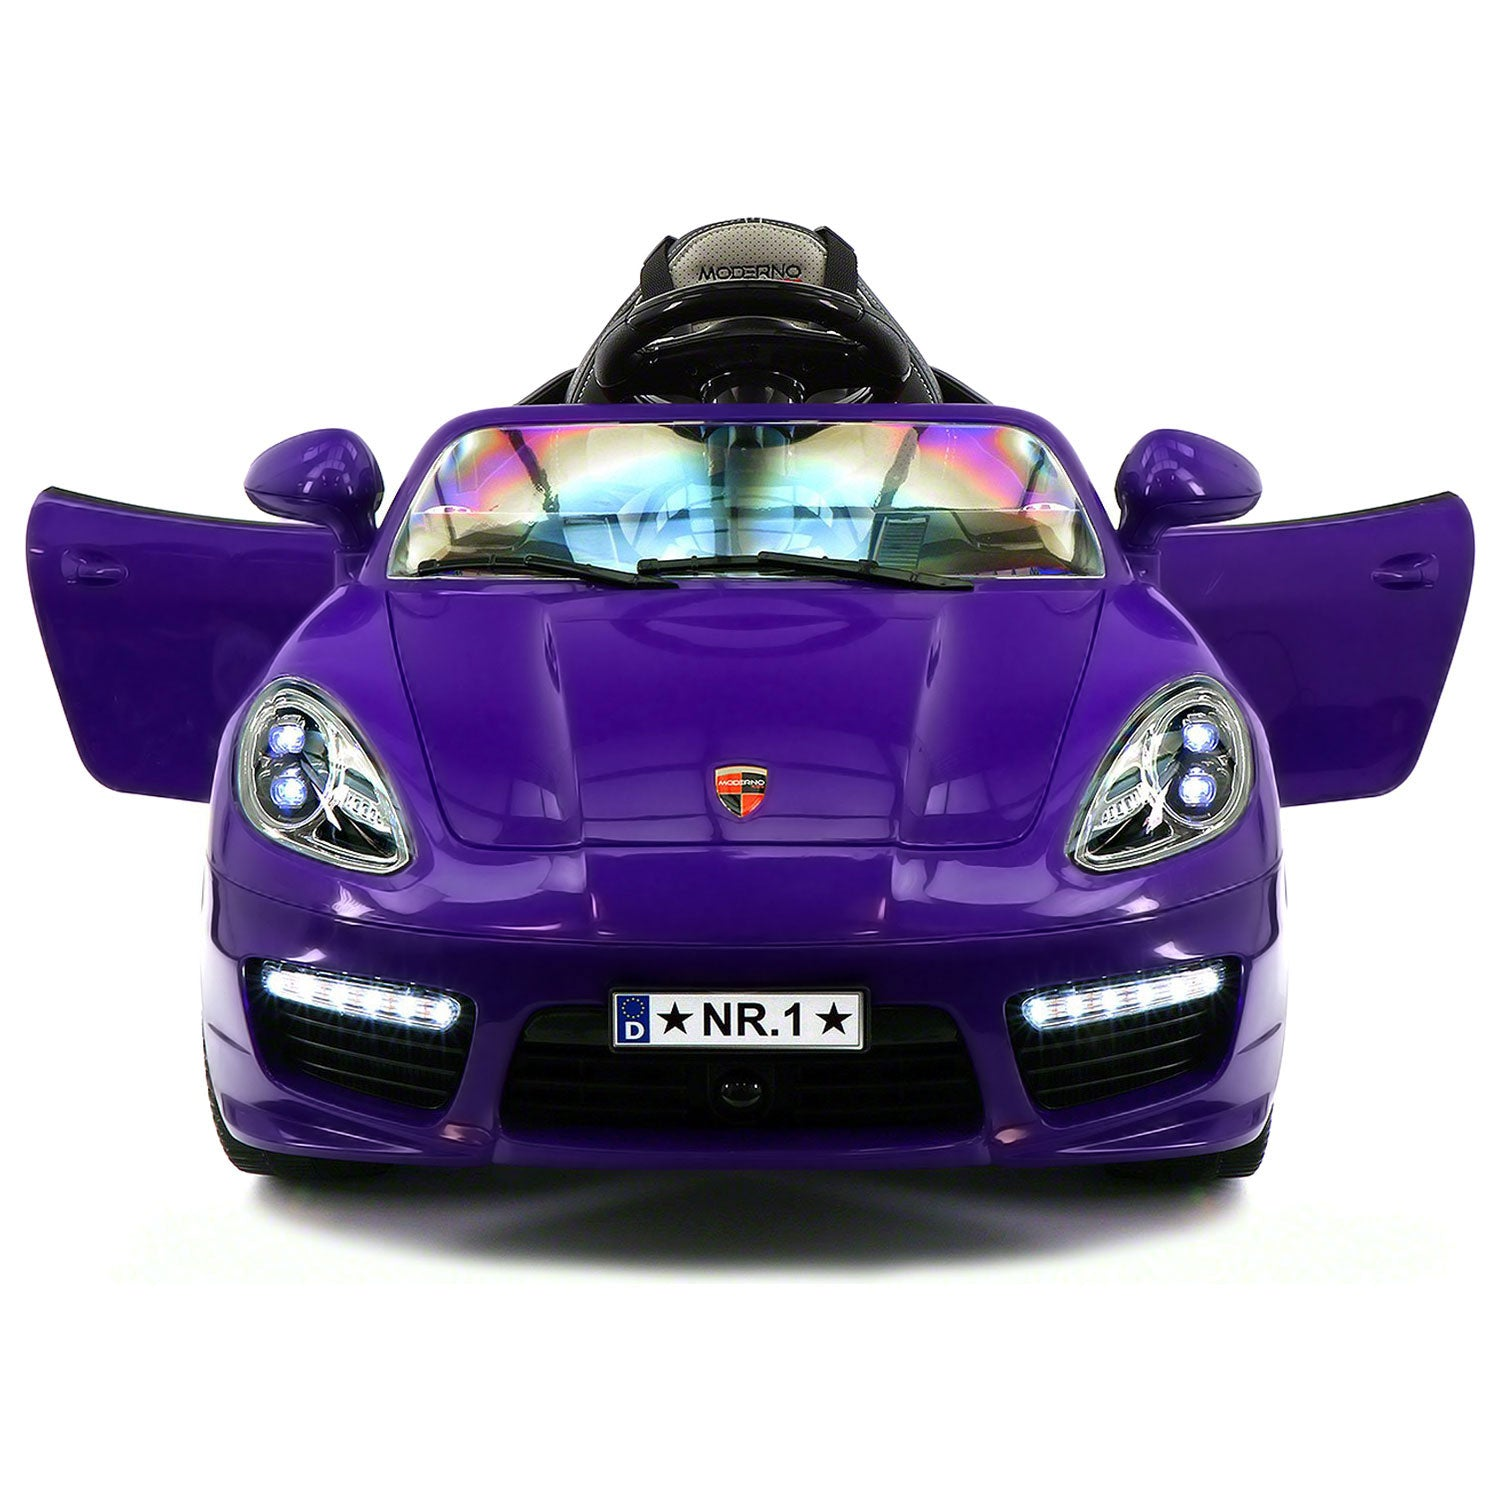 kiddie roadster 12v kids electric ride on car with rc parental remote purple